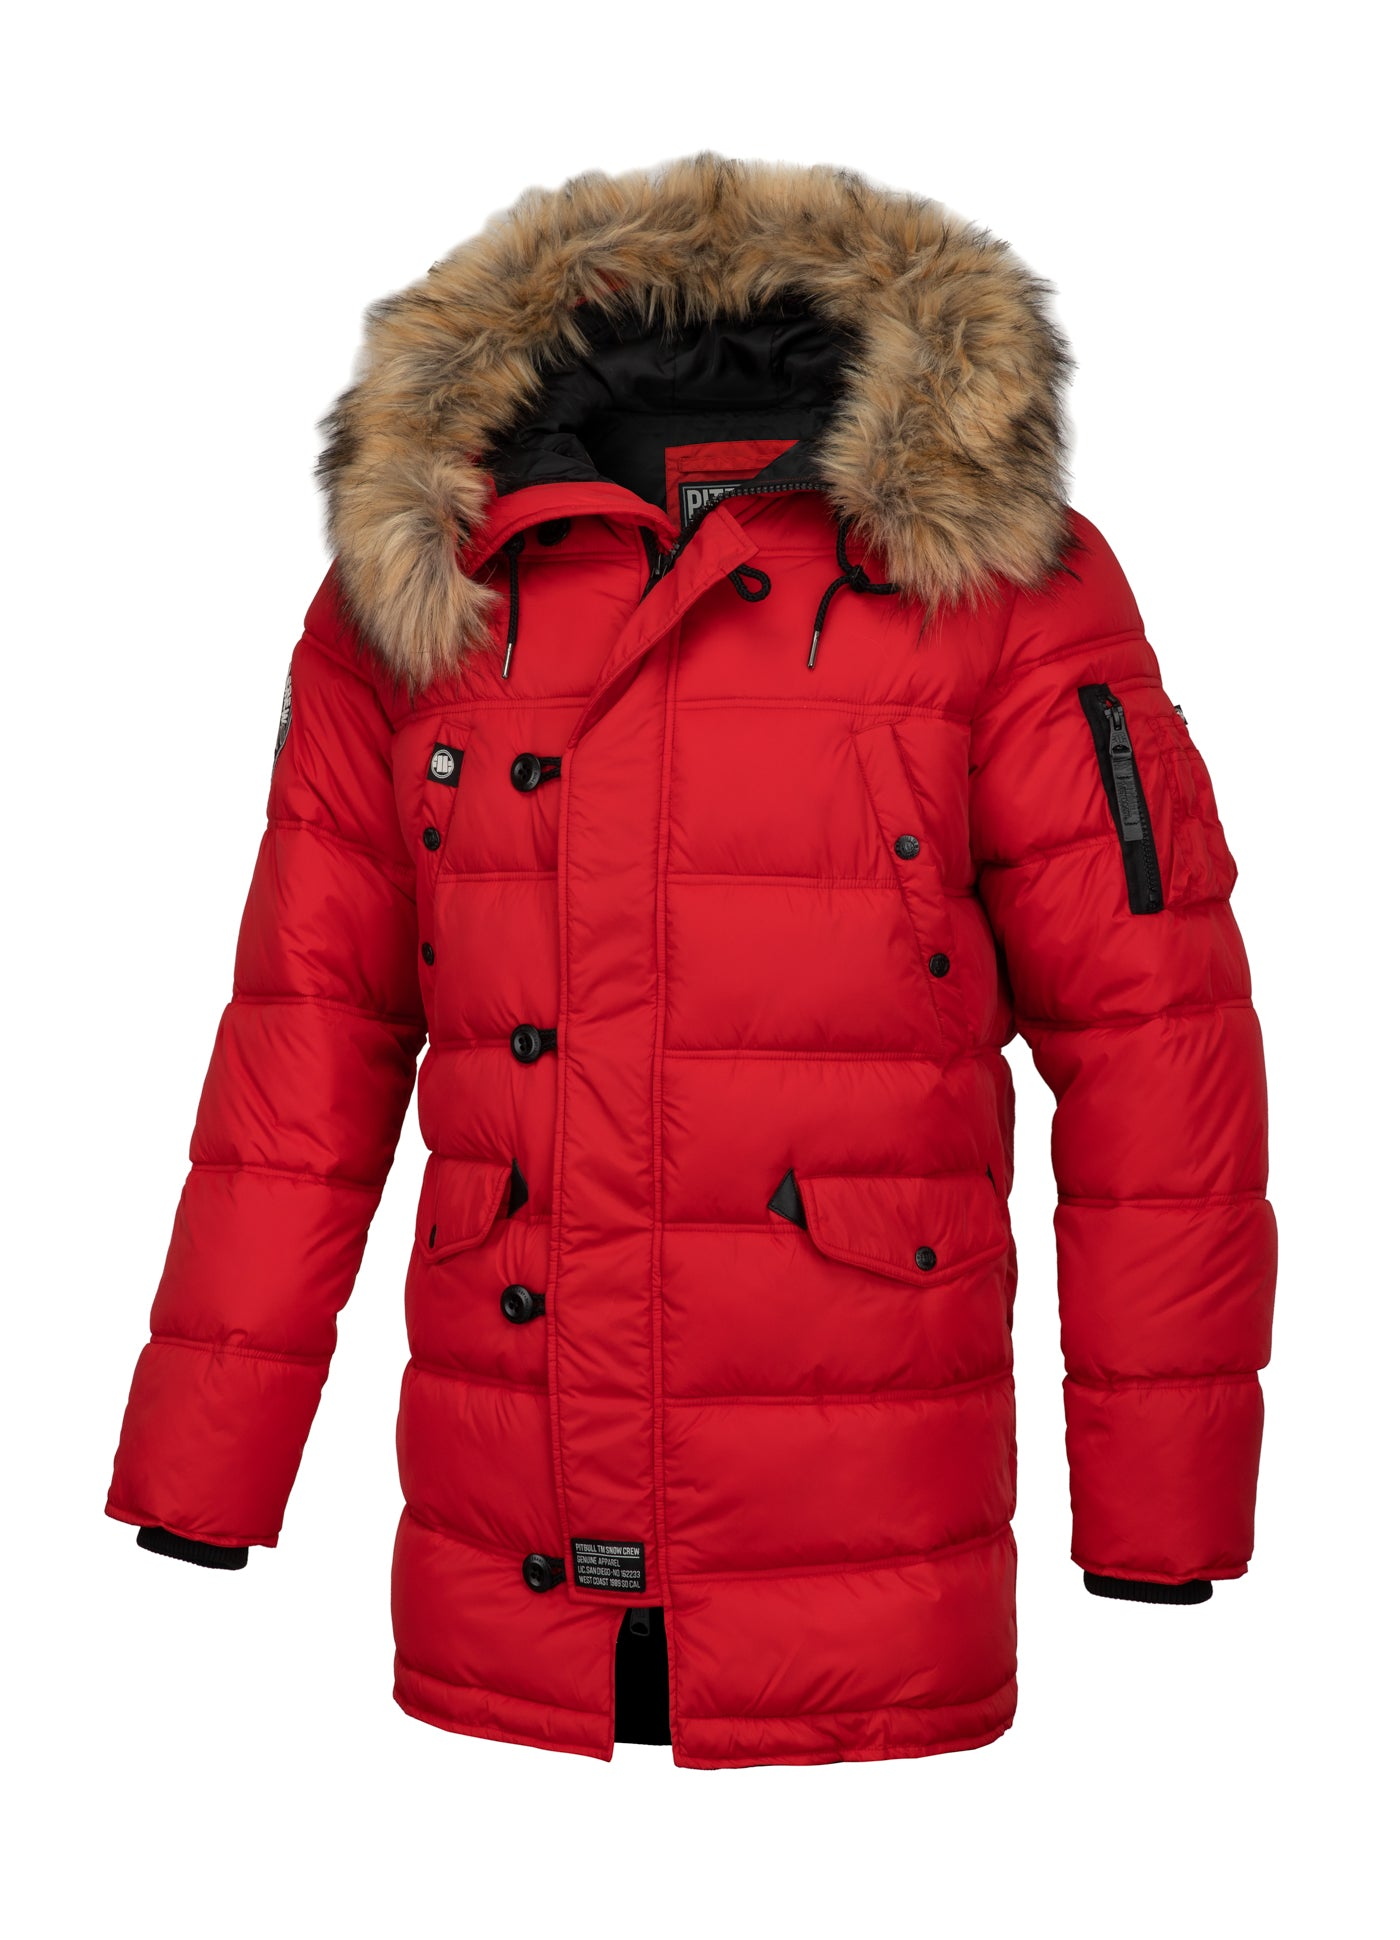 Parka Jacket KINGSTON Red